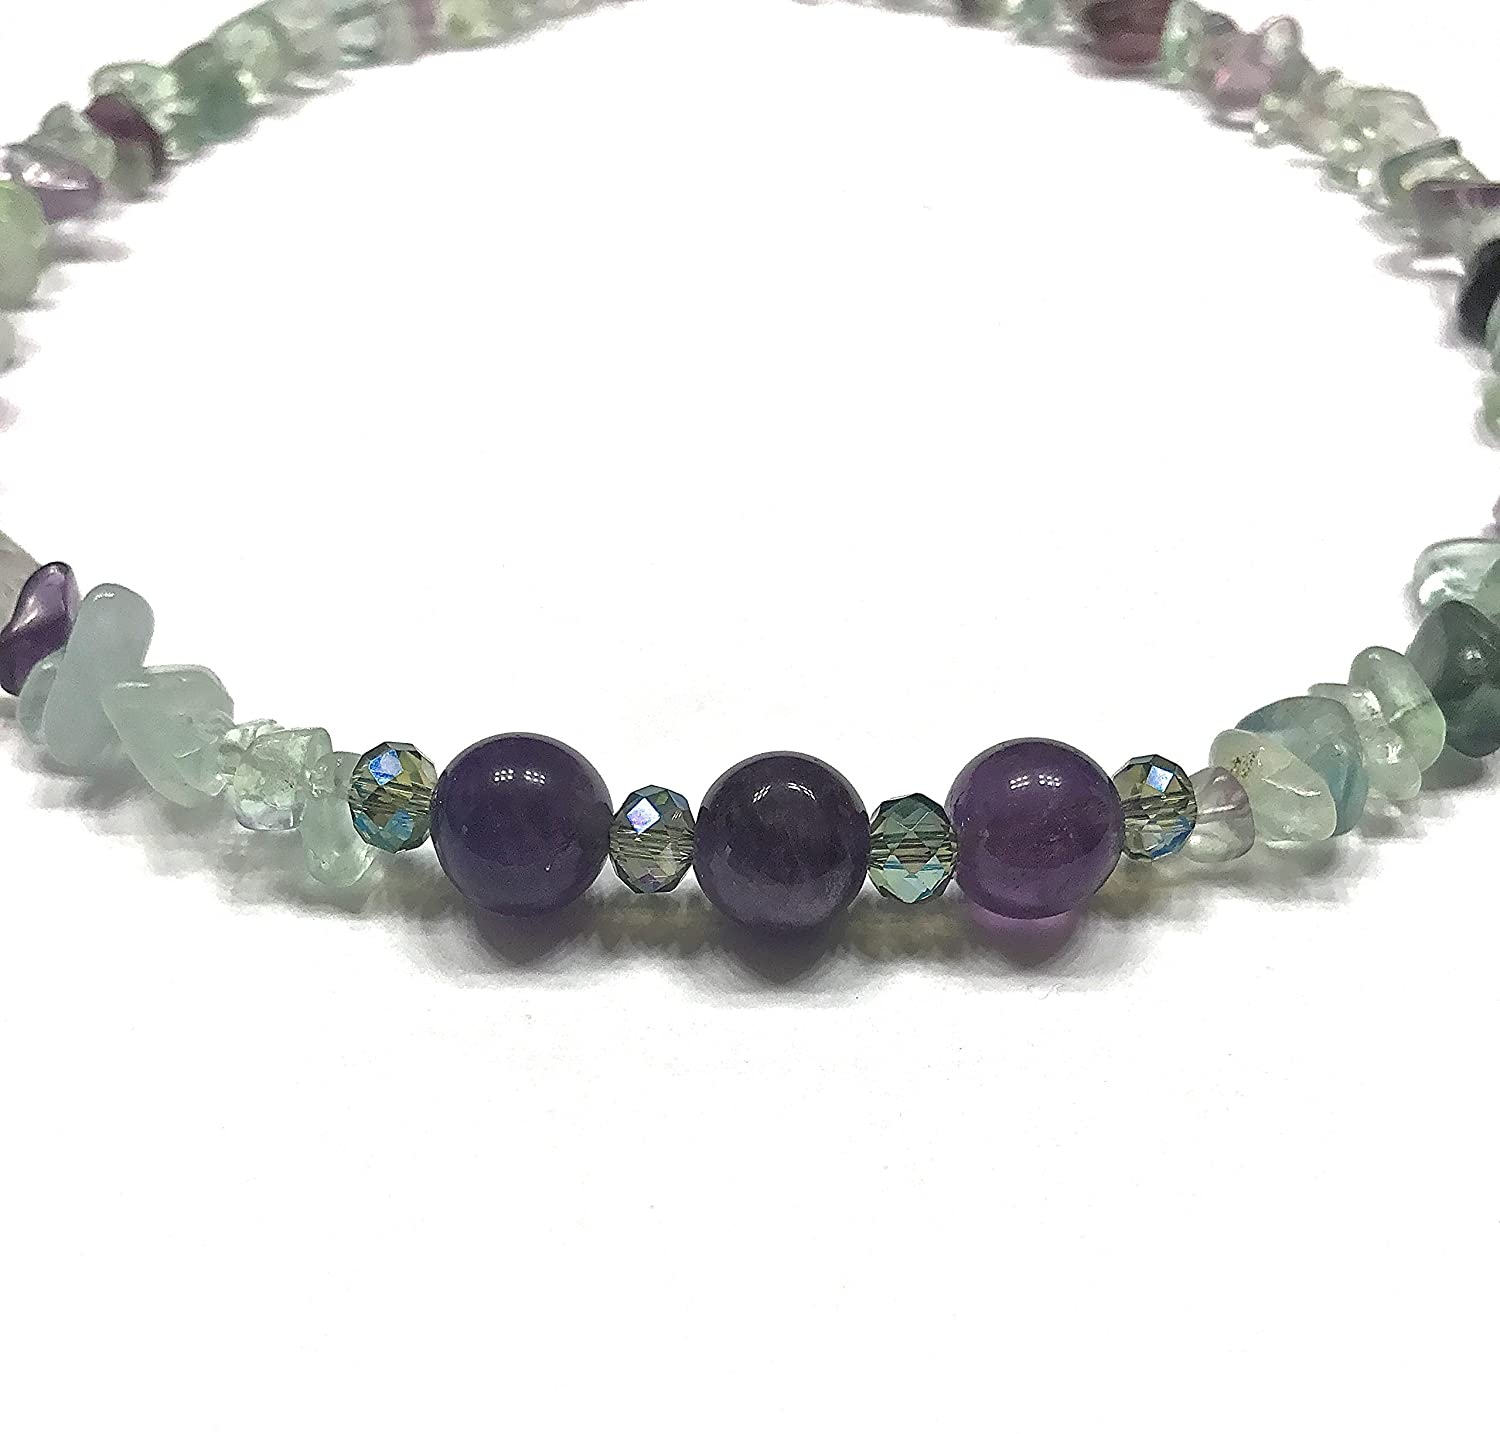 Natural Fluorite and Amethyst Choker Style Necklace Brow or Third Eye and Crown Chakra Balance.